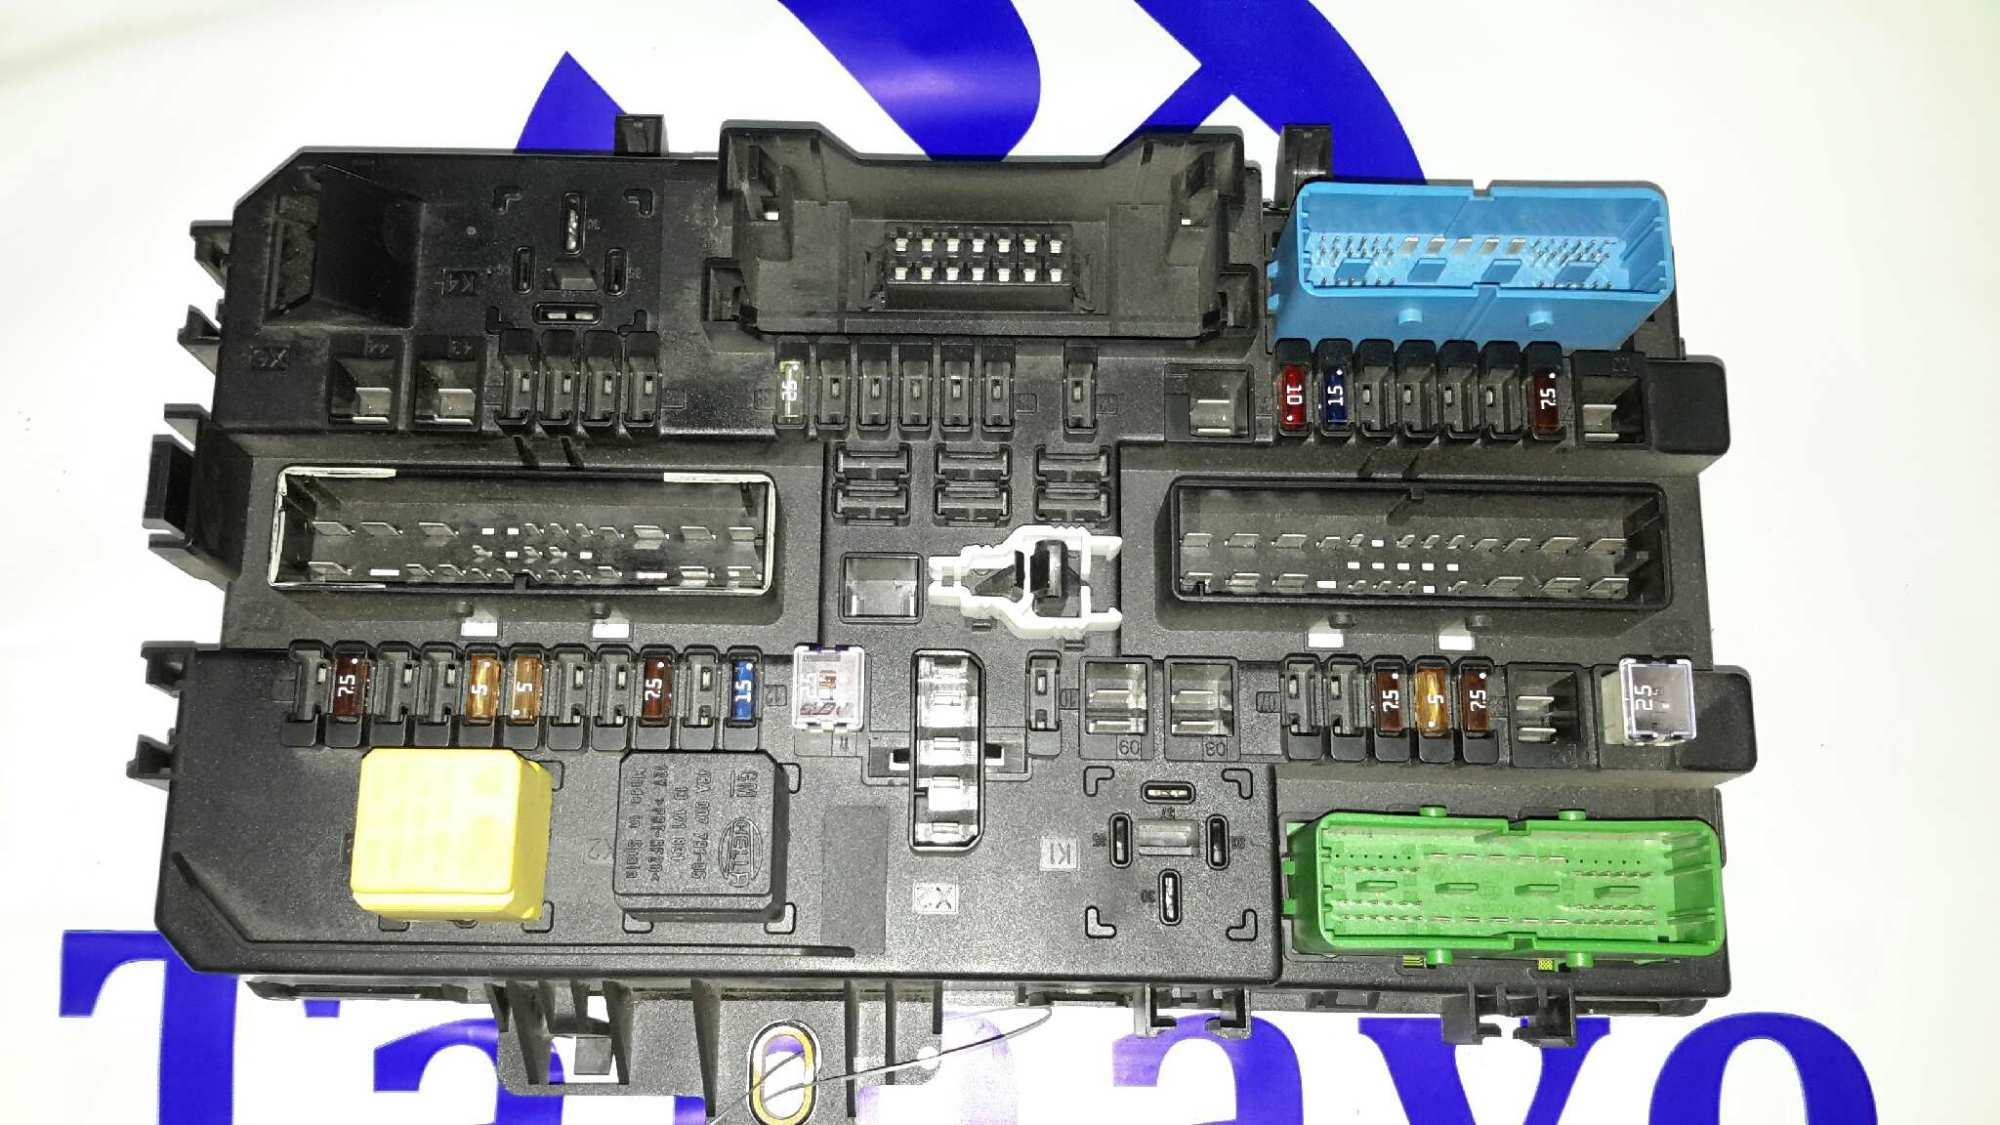 hight resolution of fuse box 5dk00866930 opel astra h a04 1 6 l48 5